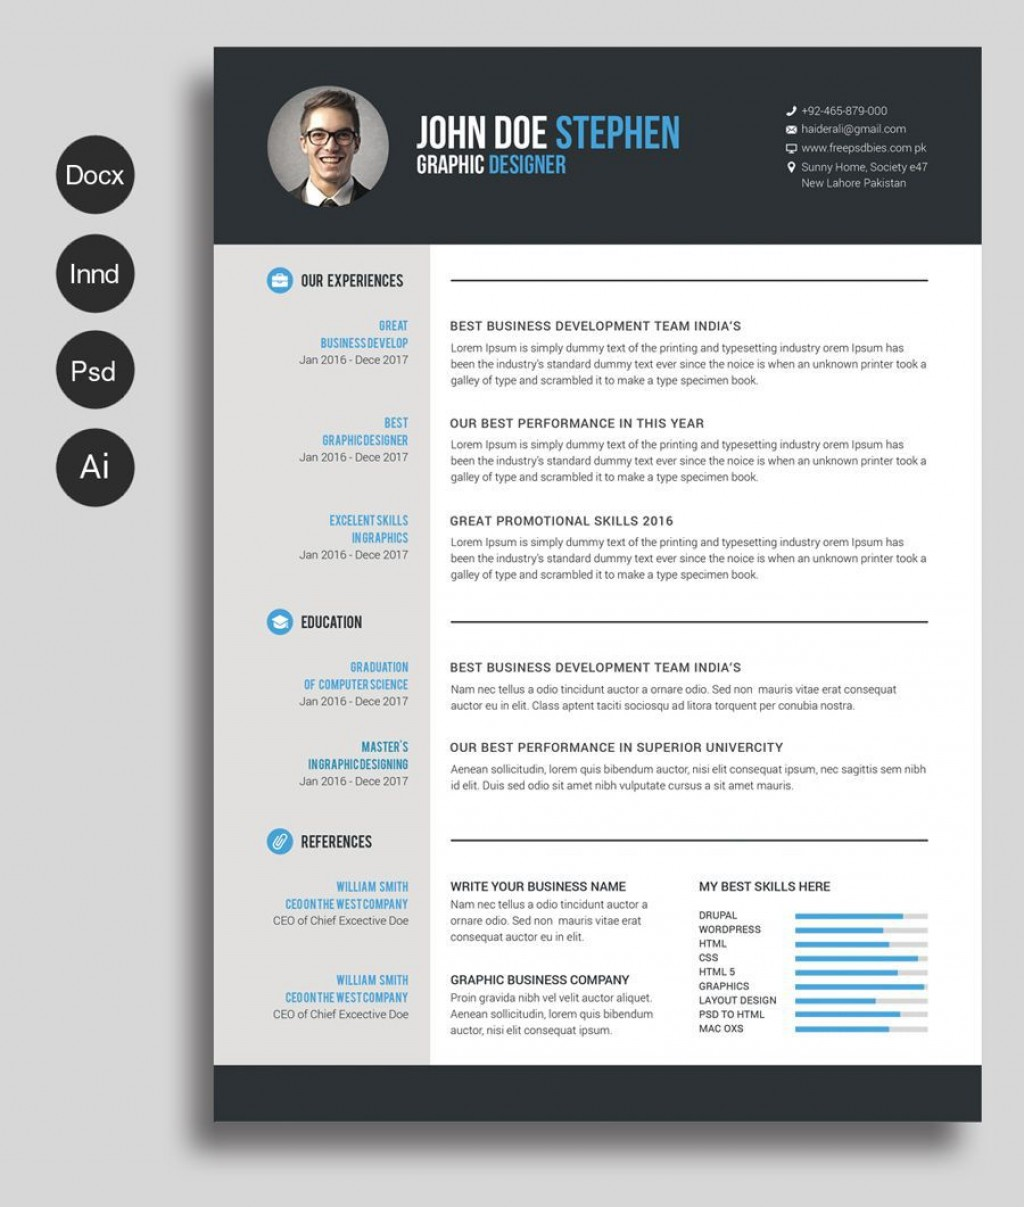 001 Fantastic How To Create A Resume Template In Microsoft Word Inspiration  Cv/resume DocxLarge